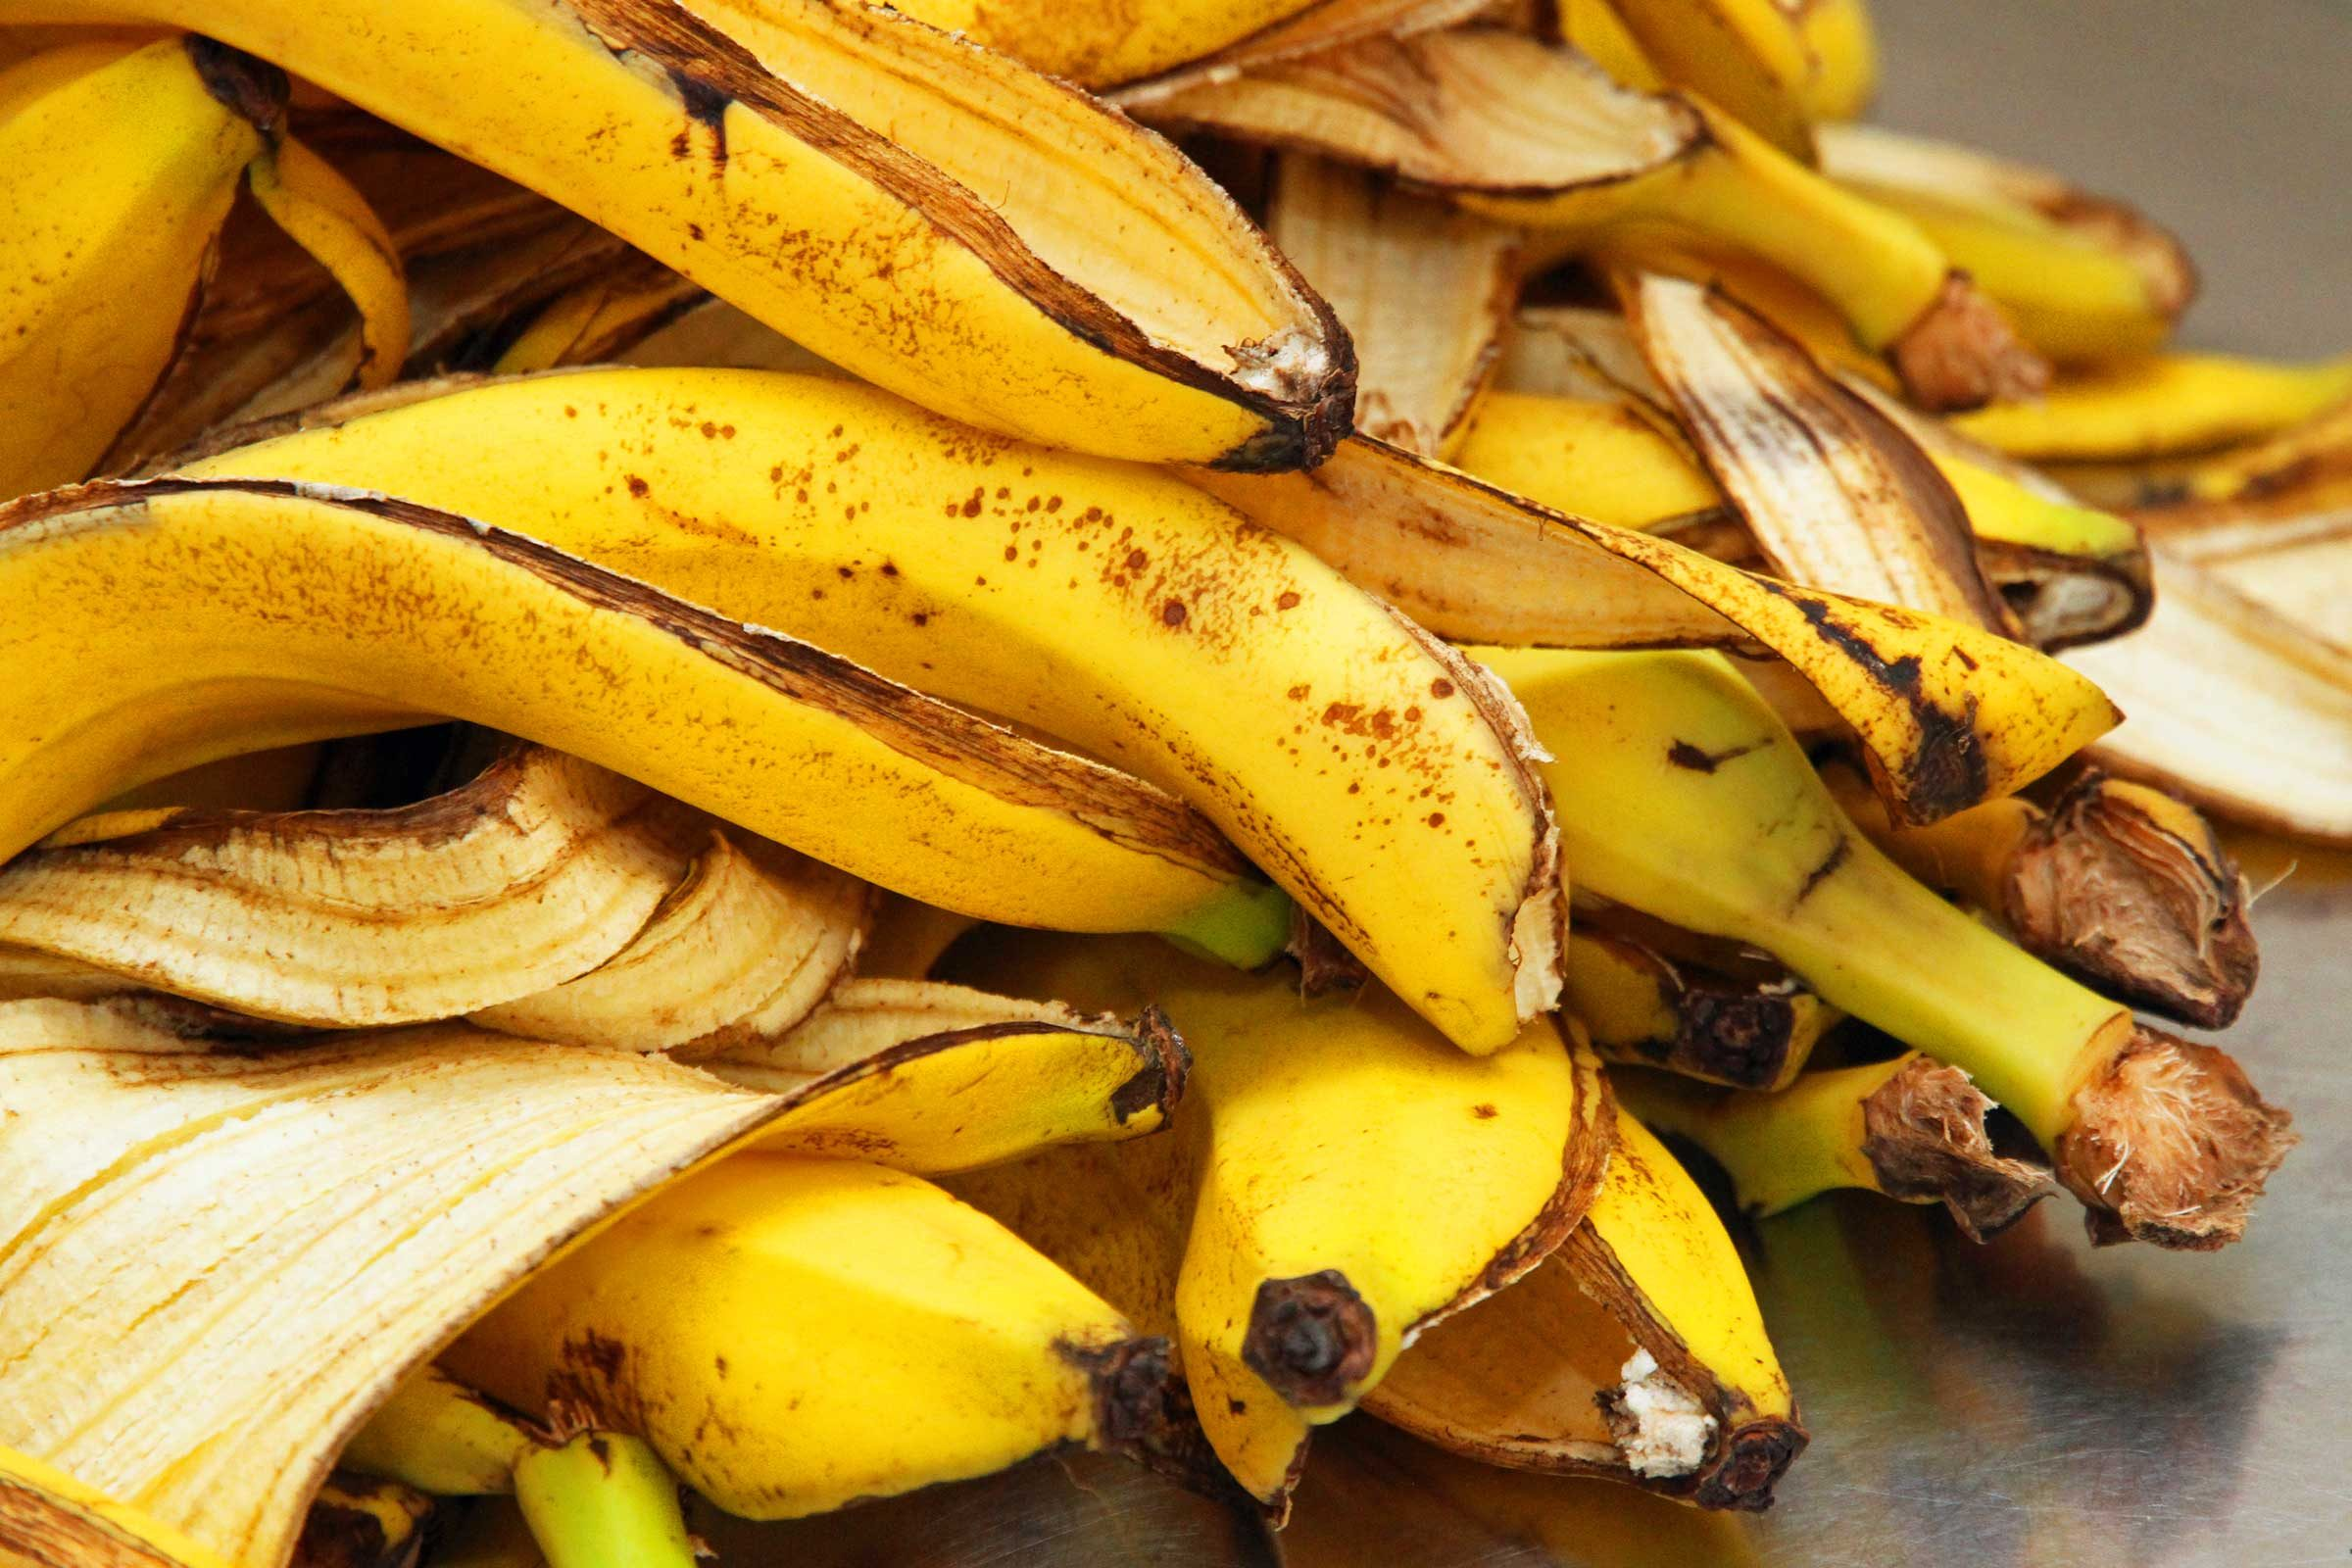 Clever Uses for Bananas (Besides Eating Them) | Reader's ...